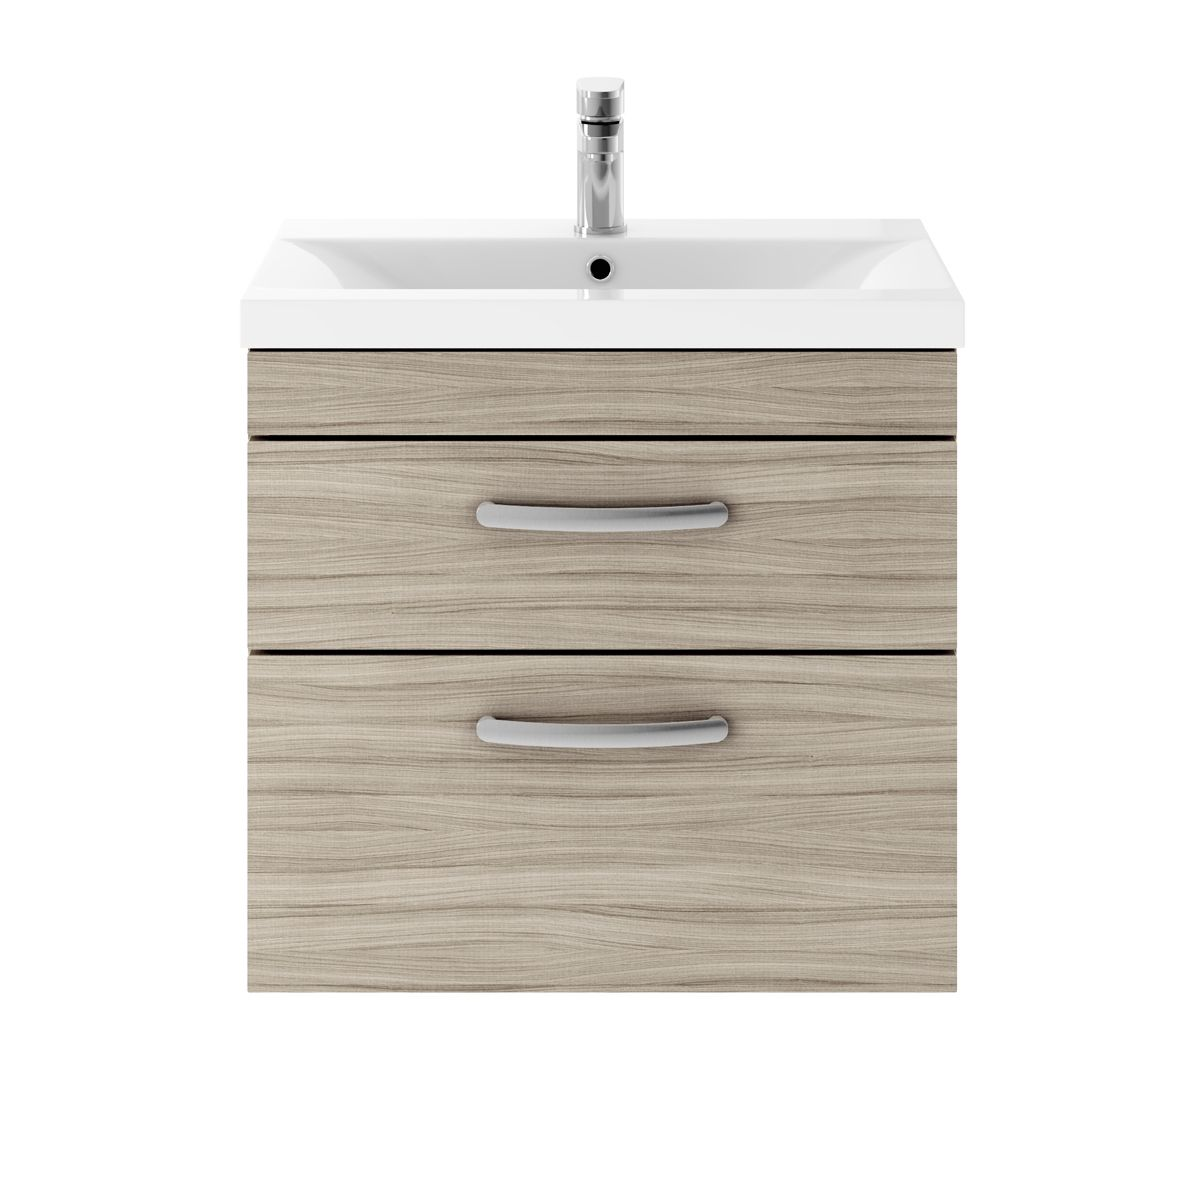 Premier Athena Driftwood 2 Drawer Wall Hung Vanity Unit 600mm